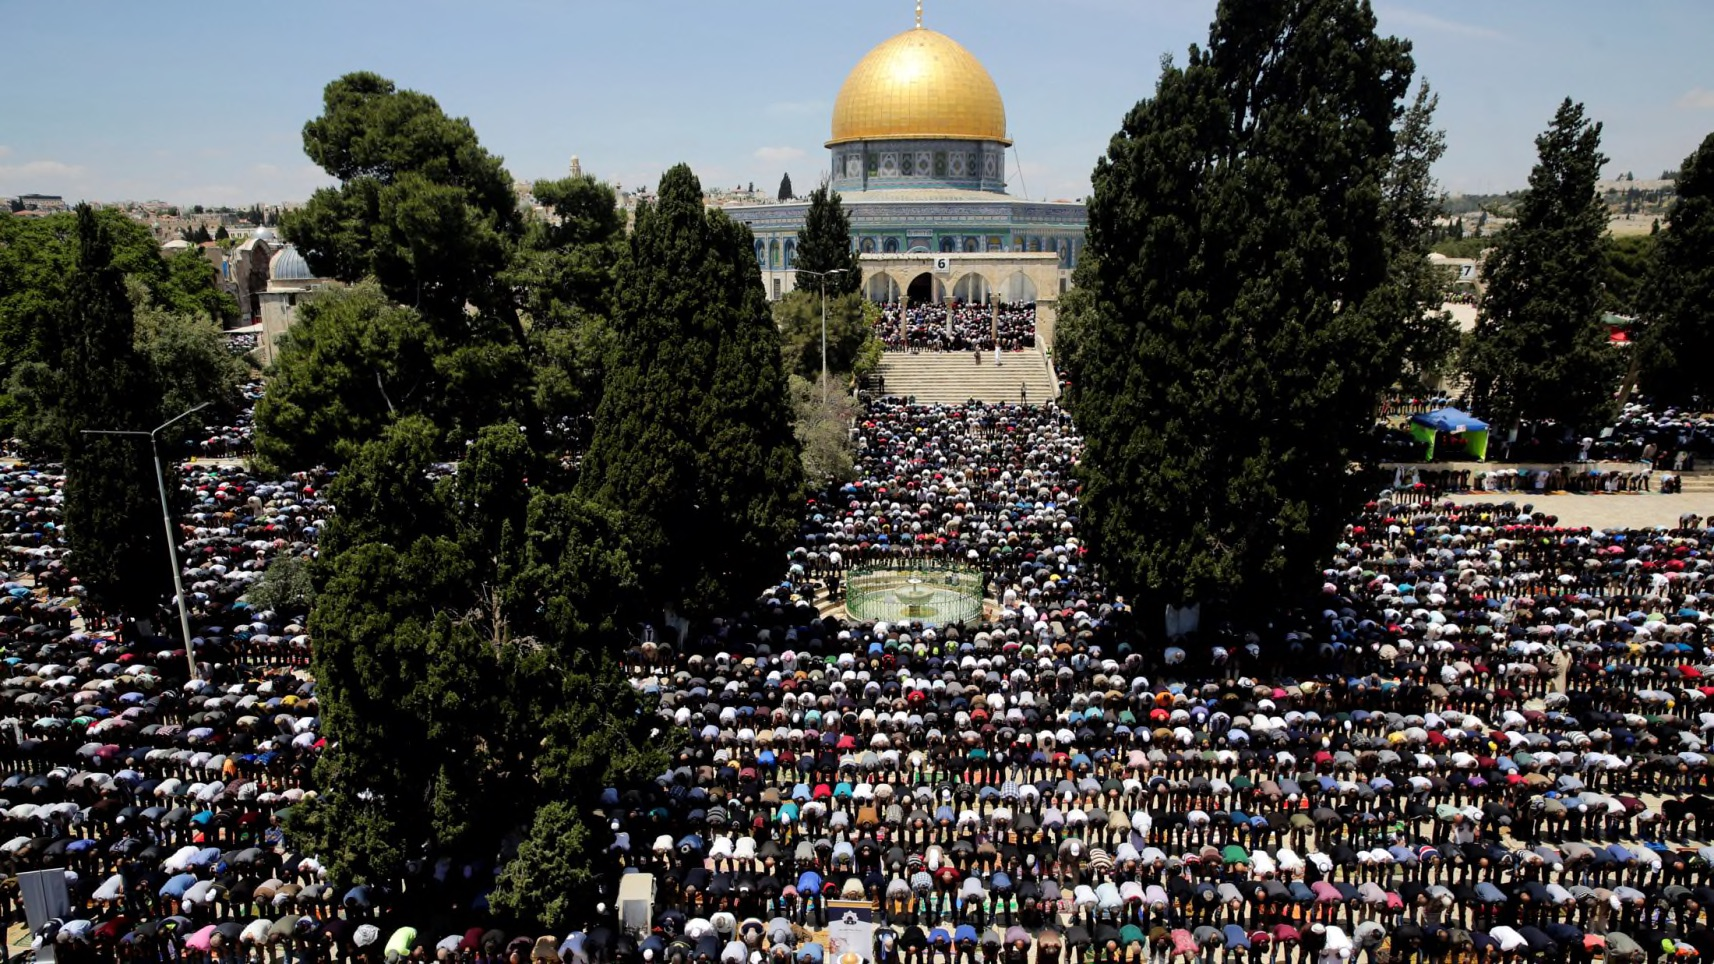 Jerusalem Waqf Calls for Protest Over Allowing Jews on Temple Mount on Muslim Holiday